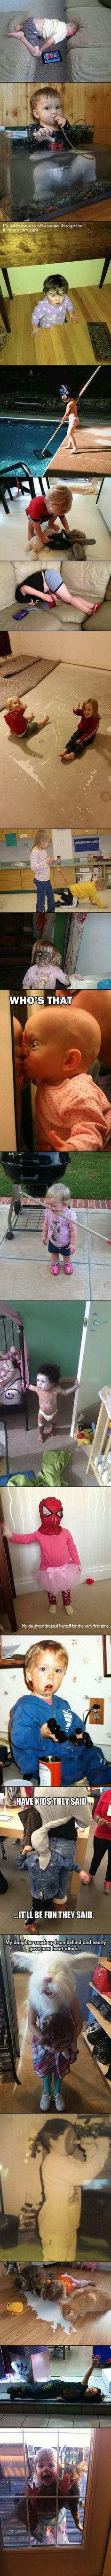 ImgLuLz Serve you Funny Pictures, Memes, GIF, Autocorrect Fails and more to make you LoL. Funny Cute, Funny Kids, The Funny, Super Funny, Funny Toddler, Laughing So Hard, Just For Laughs, Laugh Out Loud, I Laughed